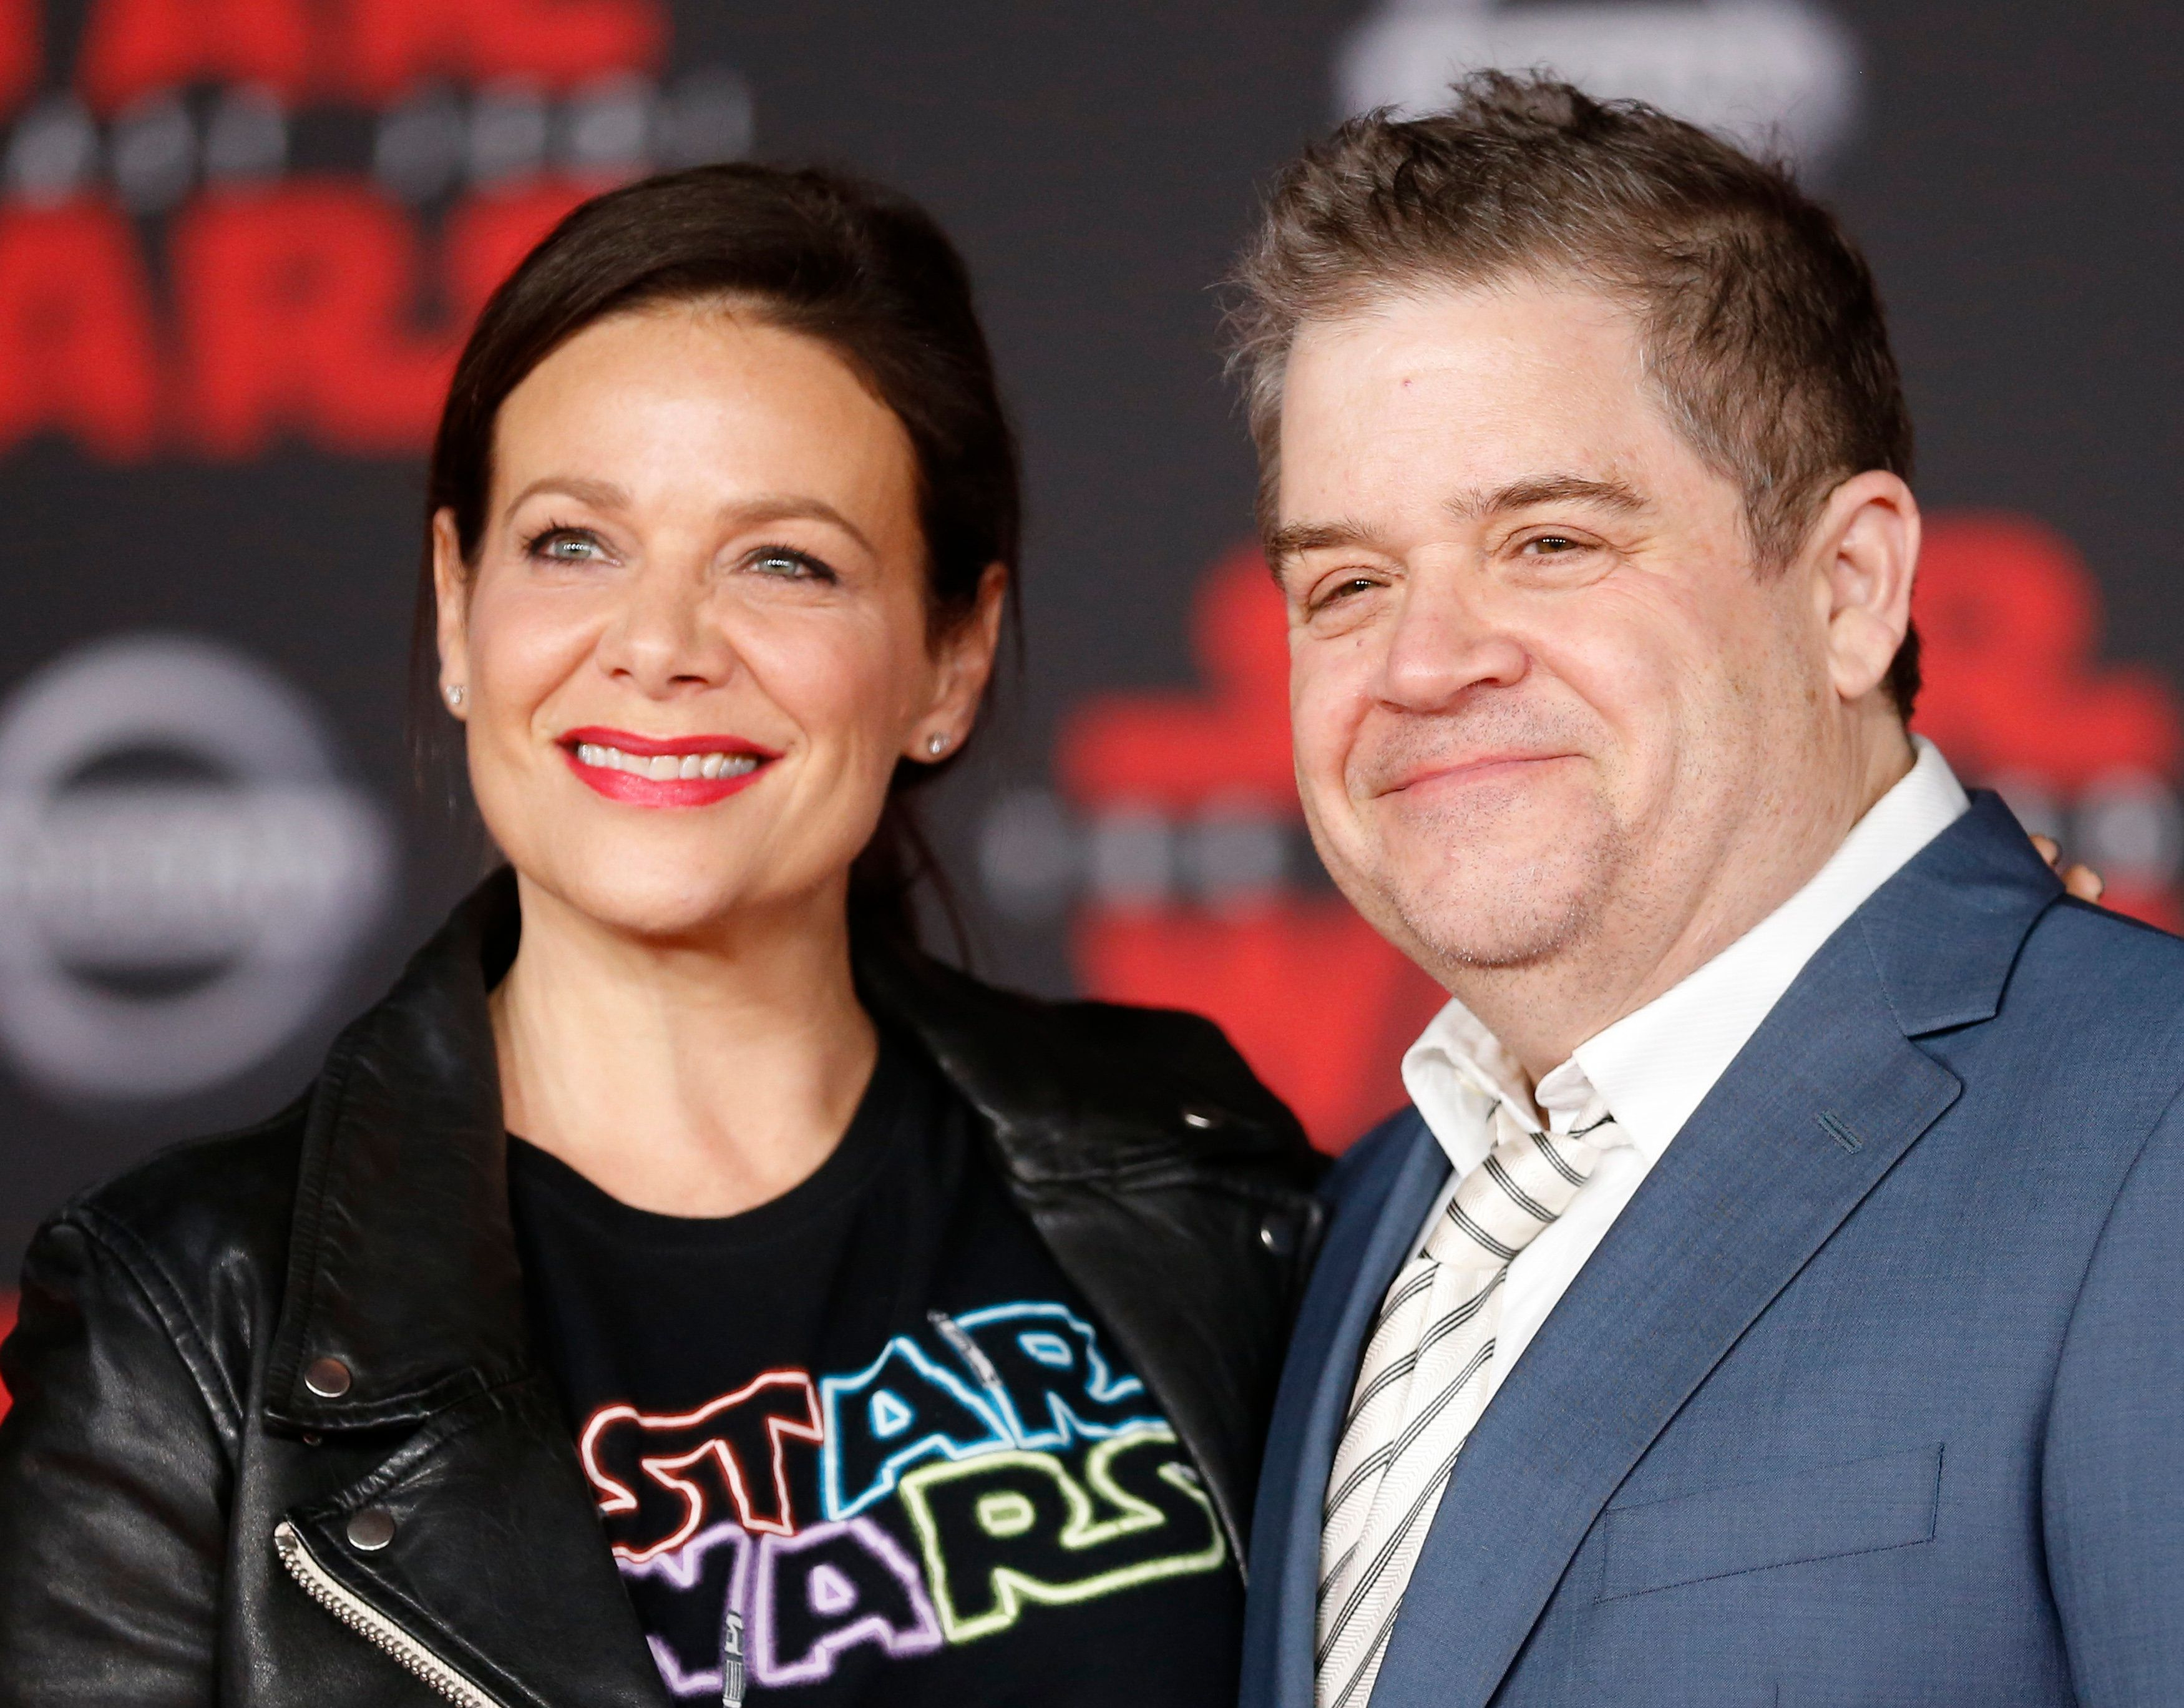 Patton Oswalt Shares Sweetest Emmy Photo Tribute To Wife Meredith